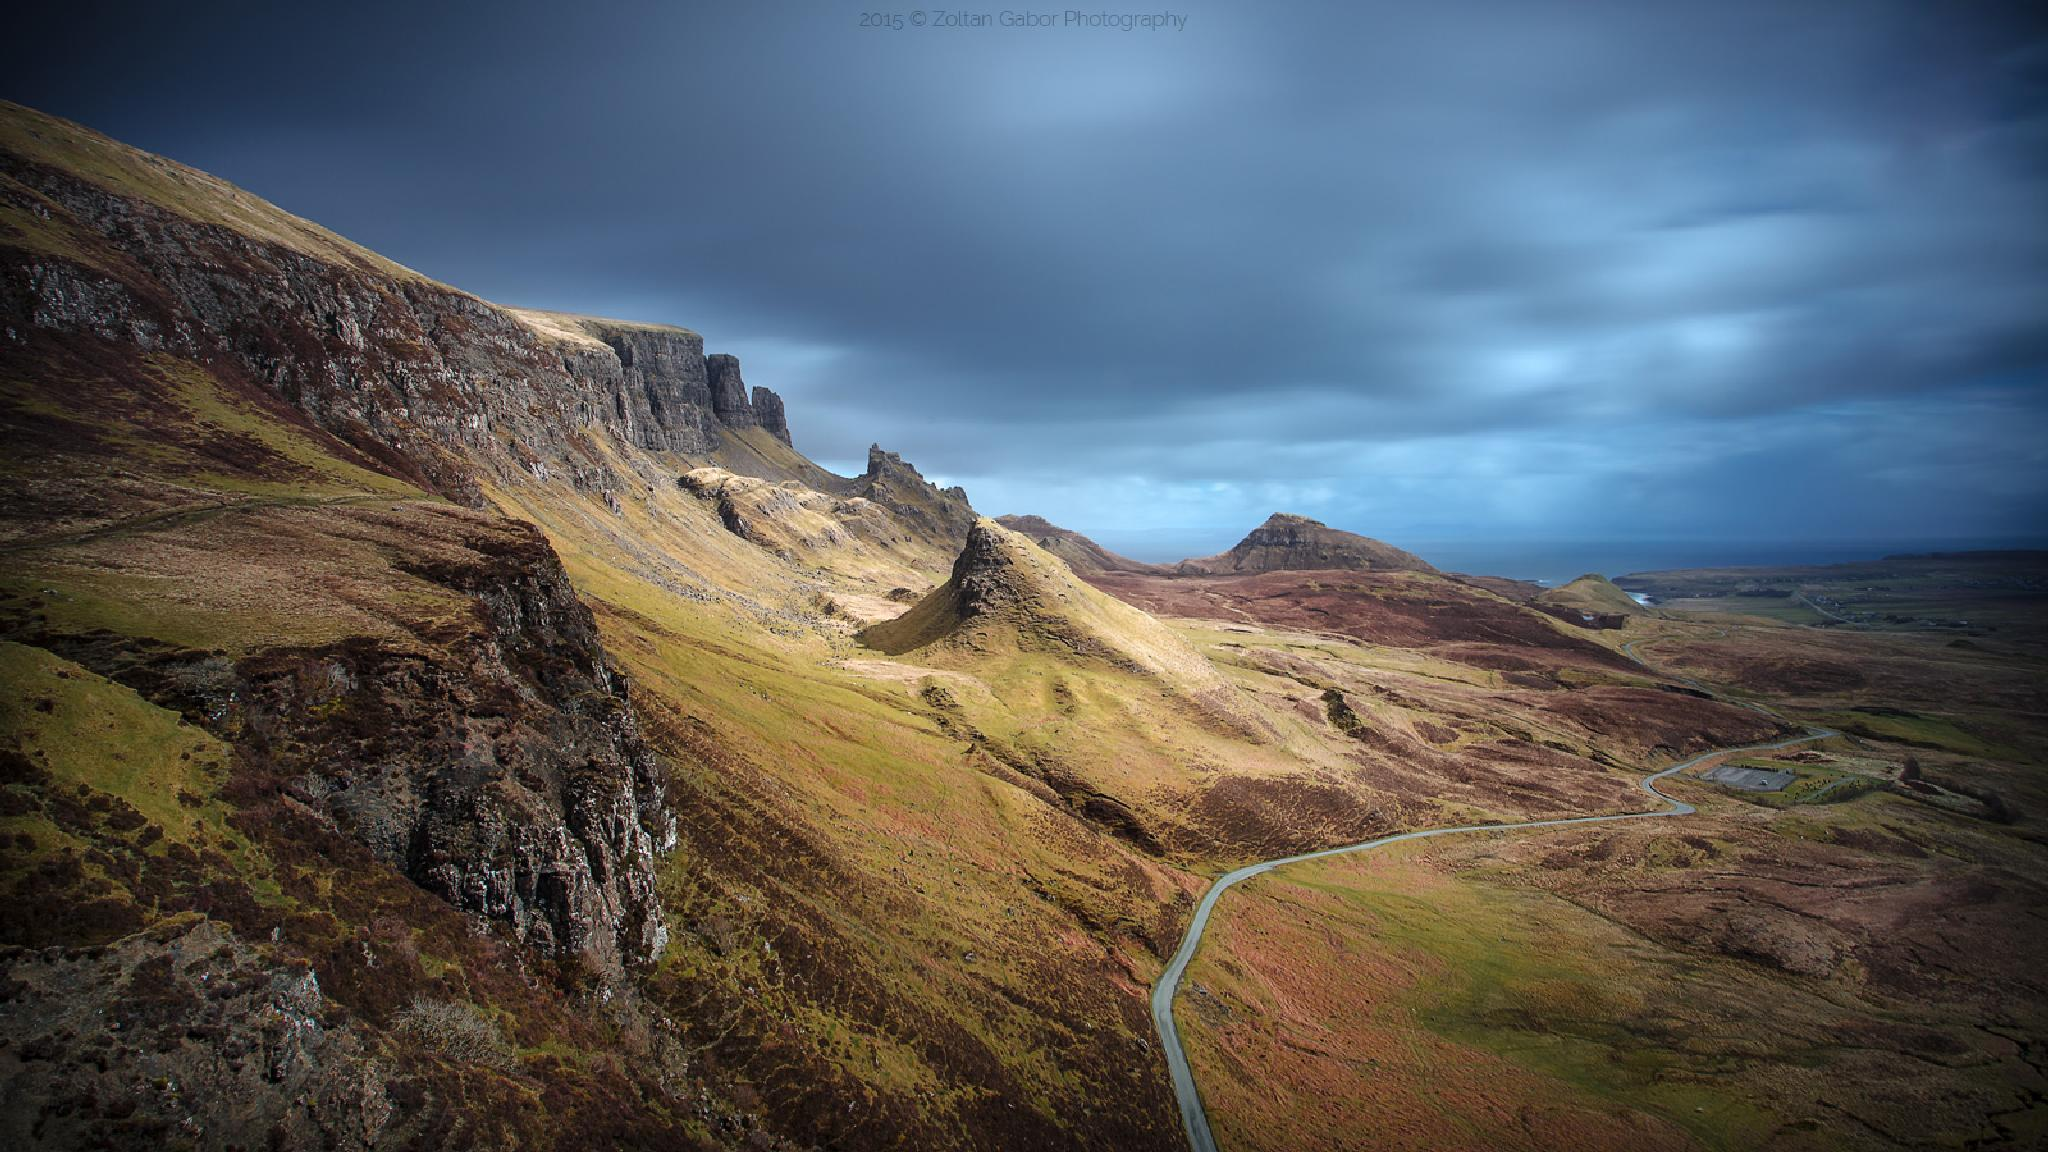 The Quiraing, Isle of Skye, Scotland by Zoltan Gabor